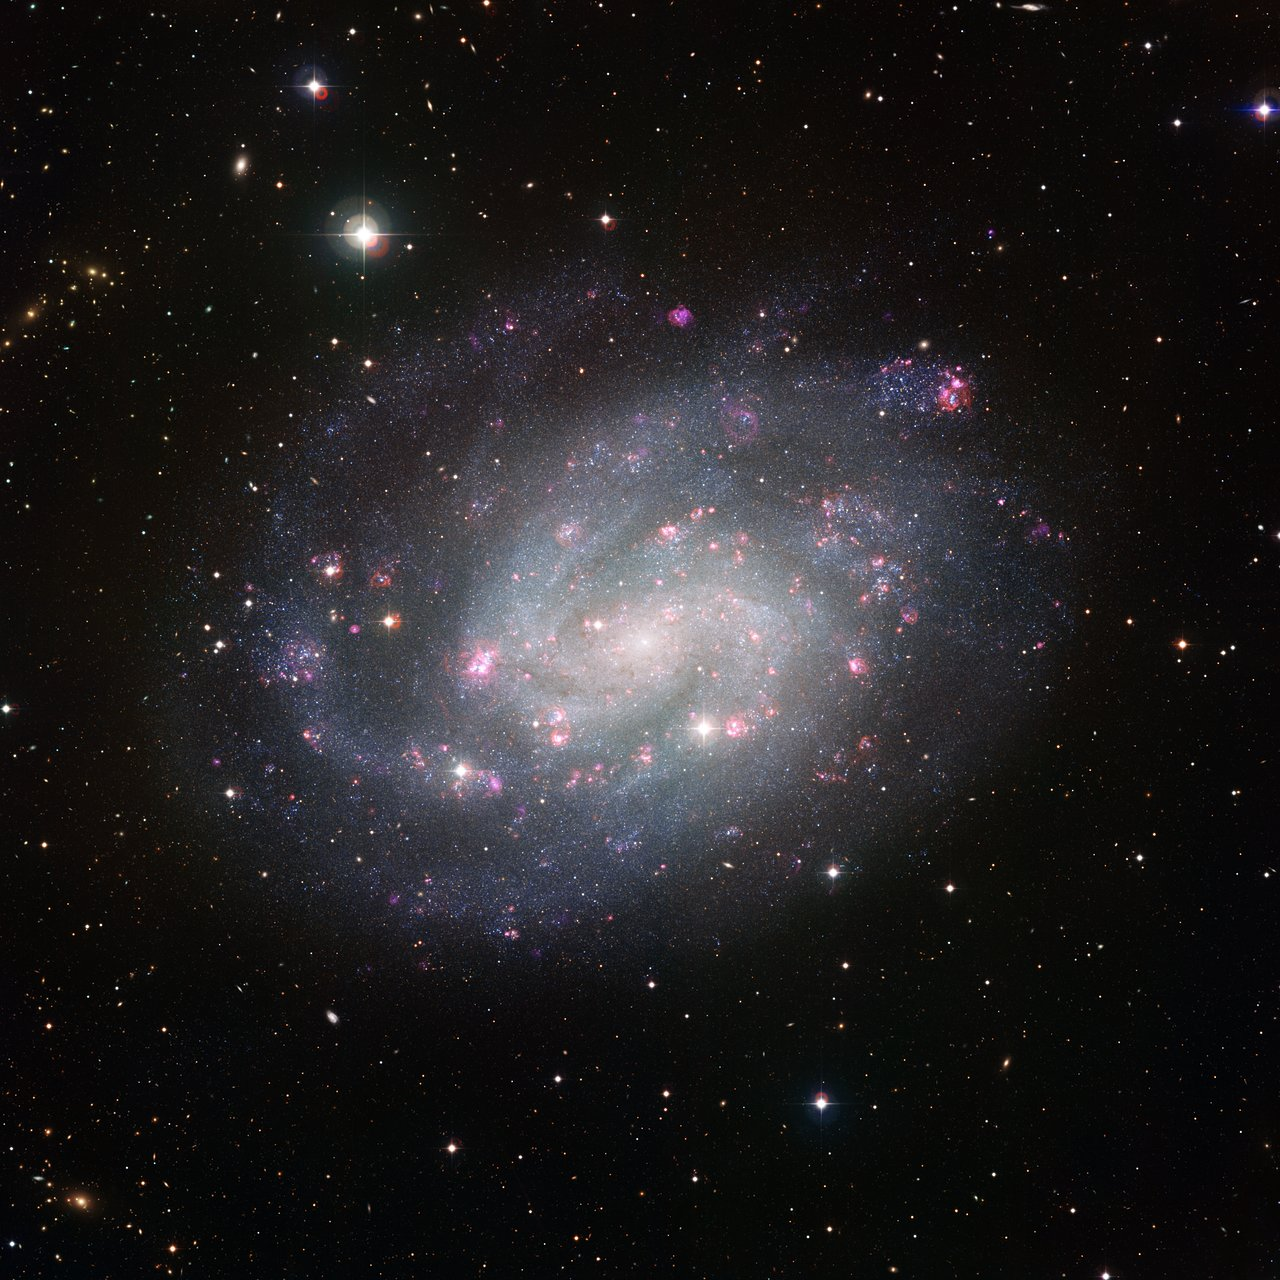 Wide Field Imager view of the southern spiral NGC 300